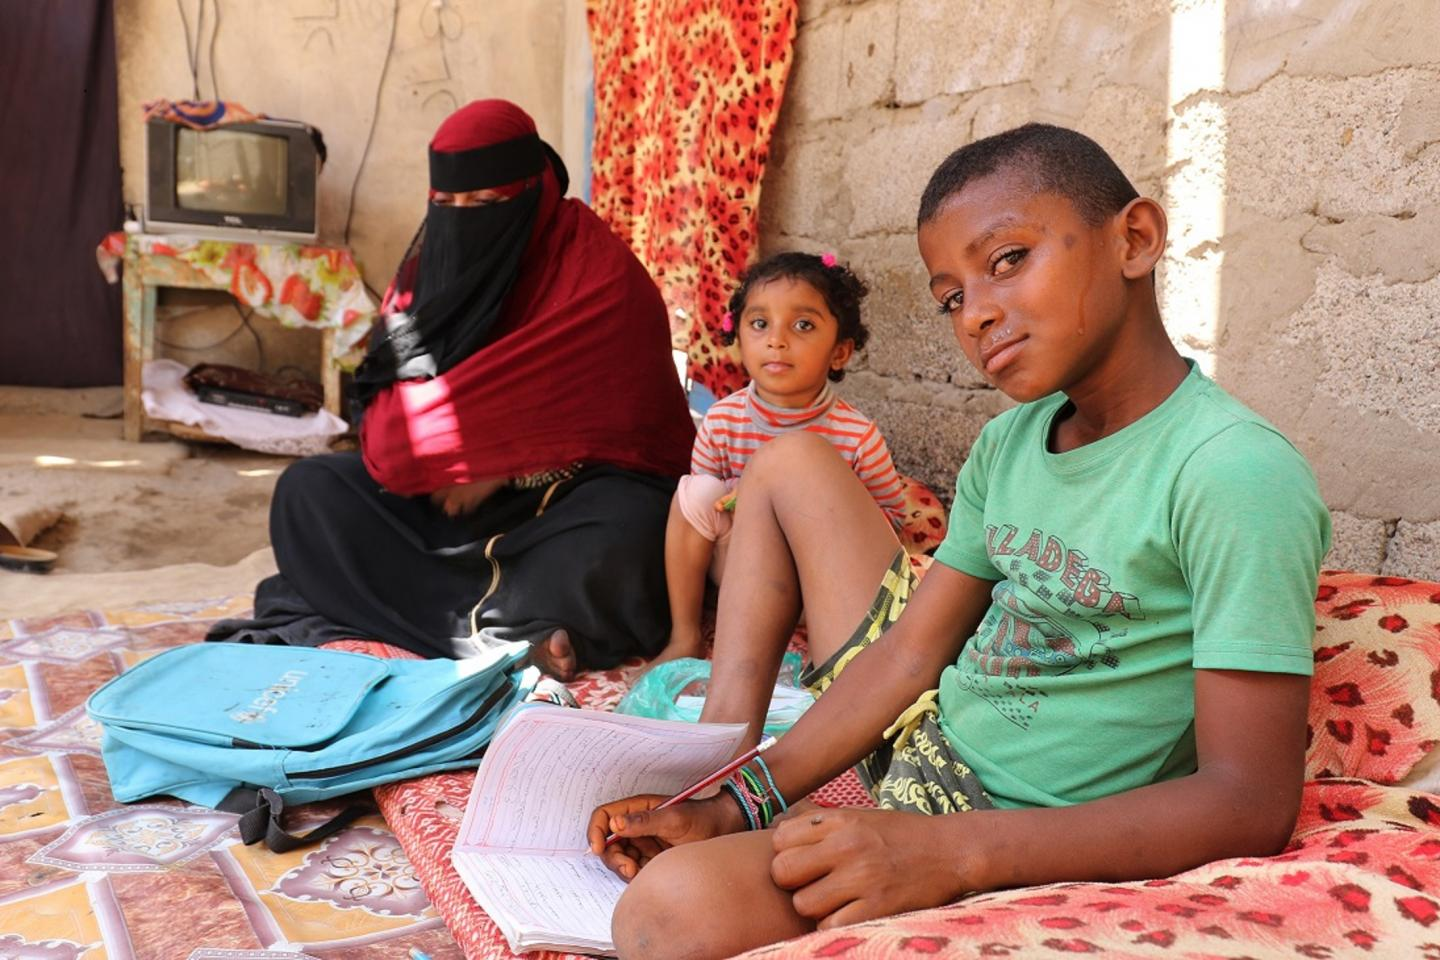 A woman sits with two children, Yemen